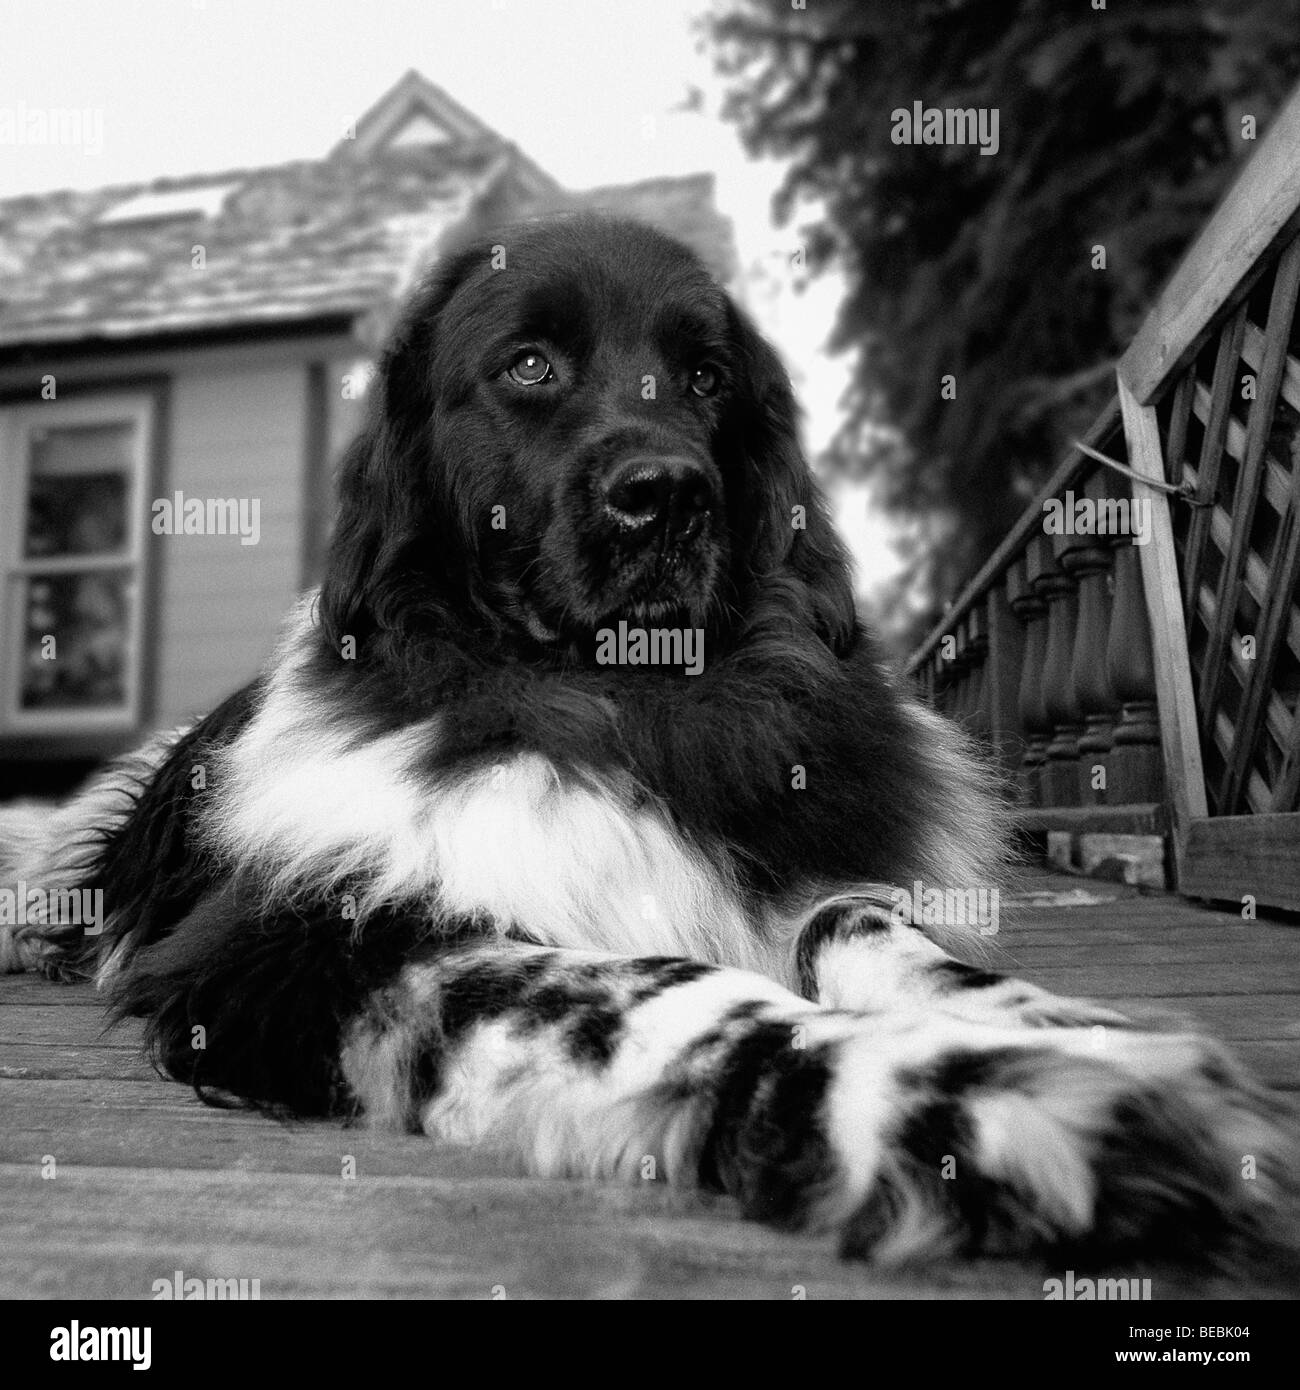 Dog lying in front of a house - Stock Image